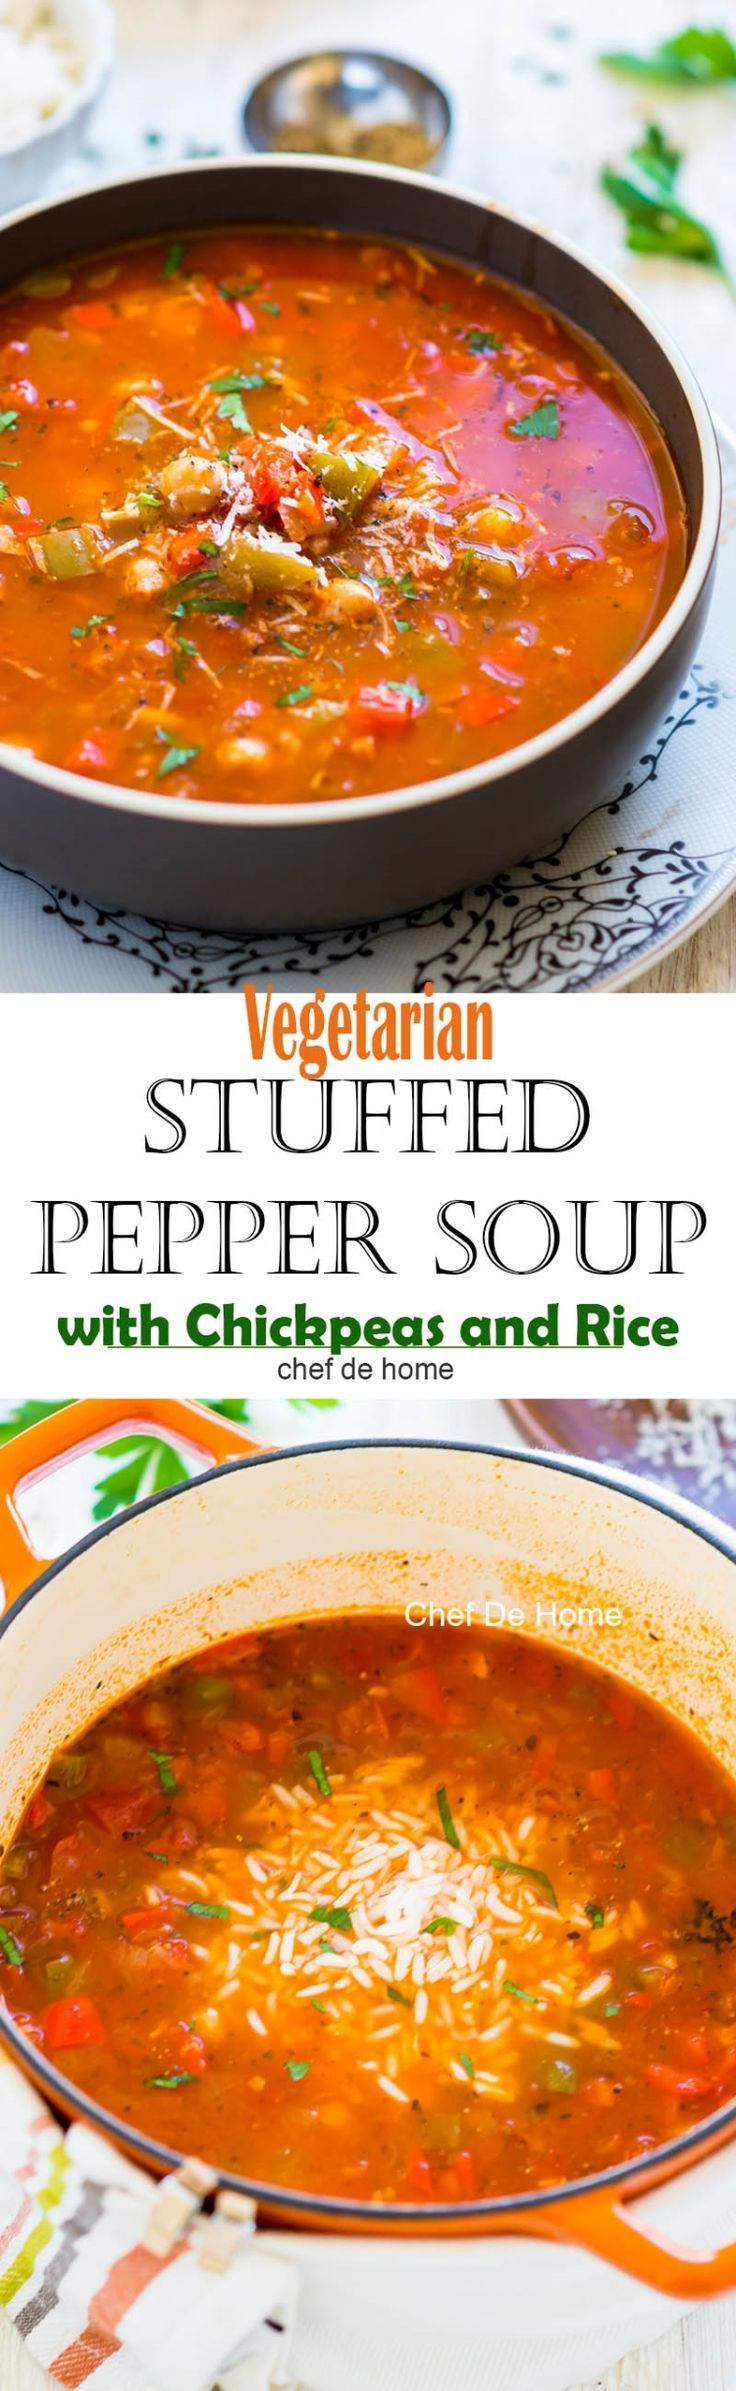 Vegetarian Stuffed Pepper Soup Vegetarian and healthy stuffed pepper soup with chickpeas. Filling and comforting just like stuffed pepper casserole.